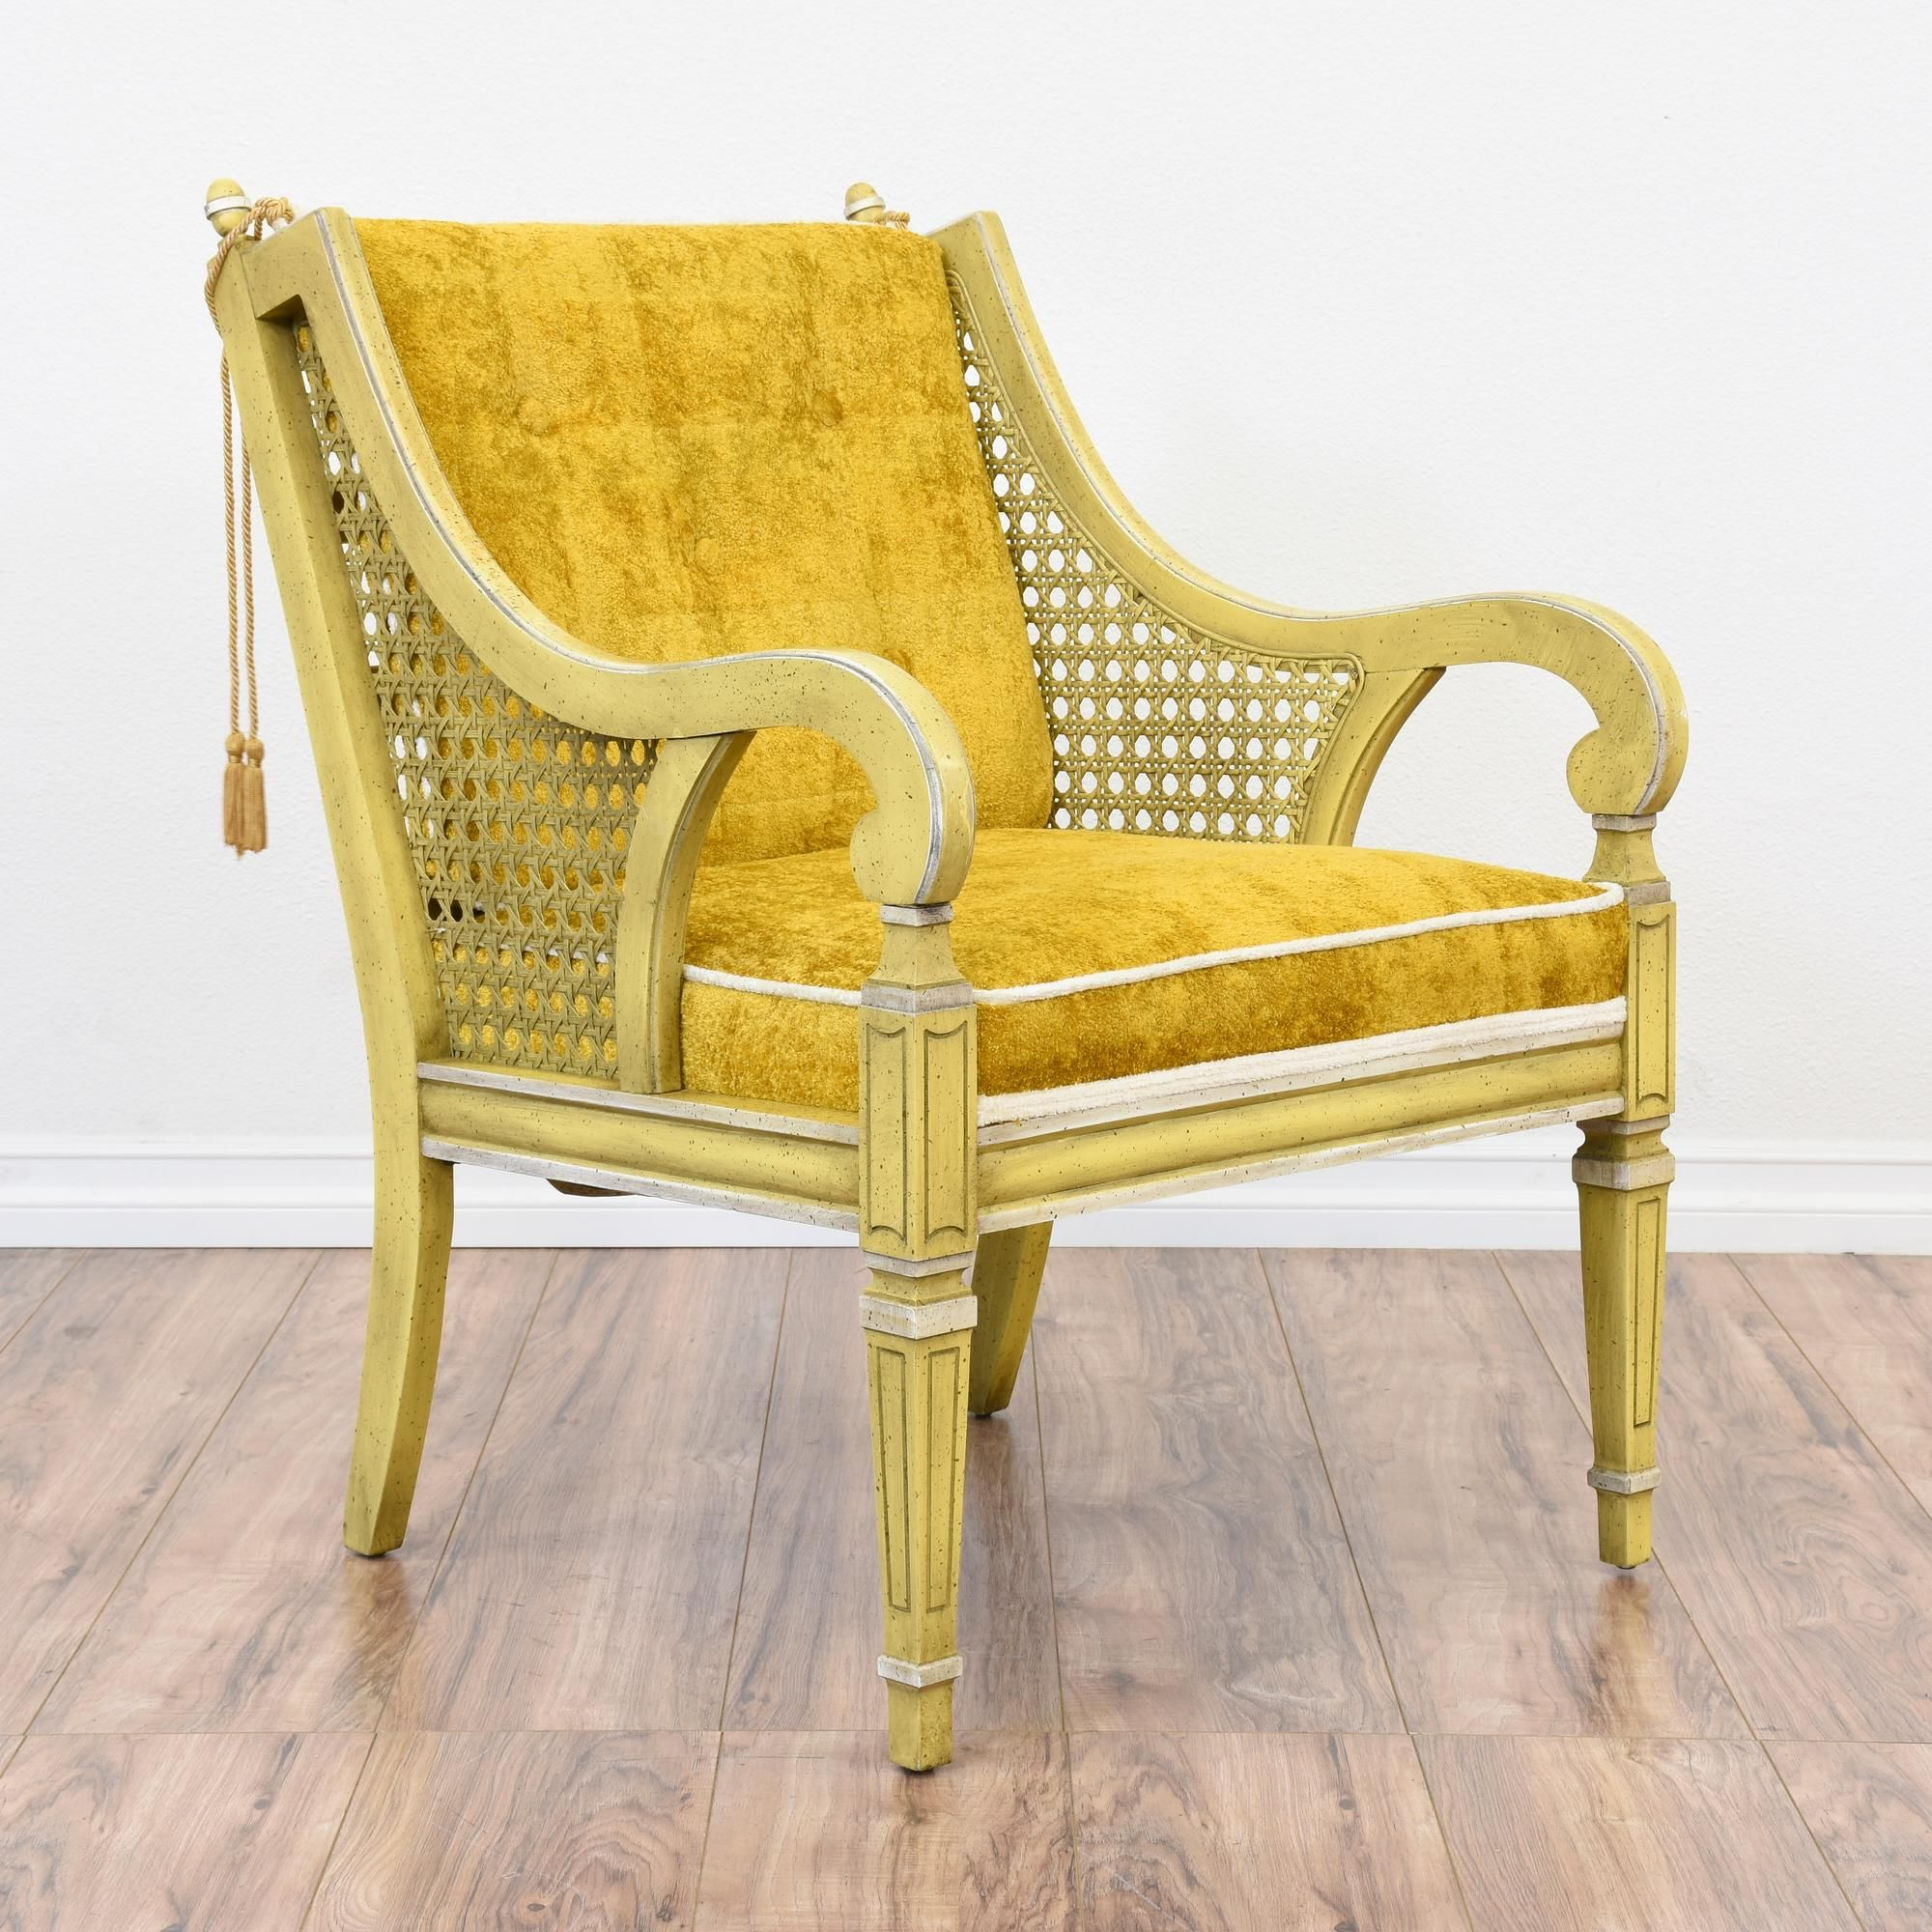 Attractive This Eclectic Armchair Is Featured In A Solid Wood Painted In An Antiqued  Yellow Finish And